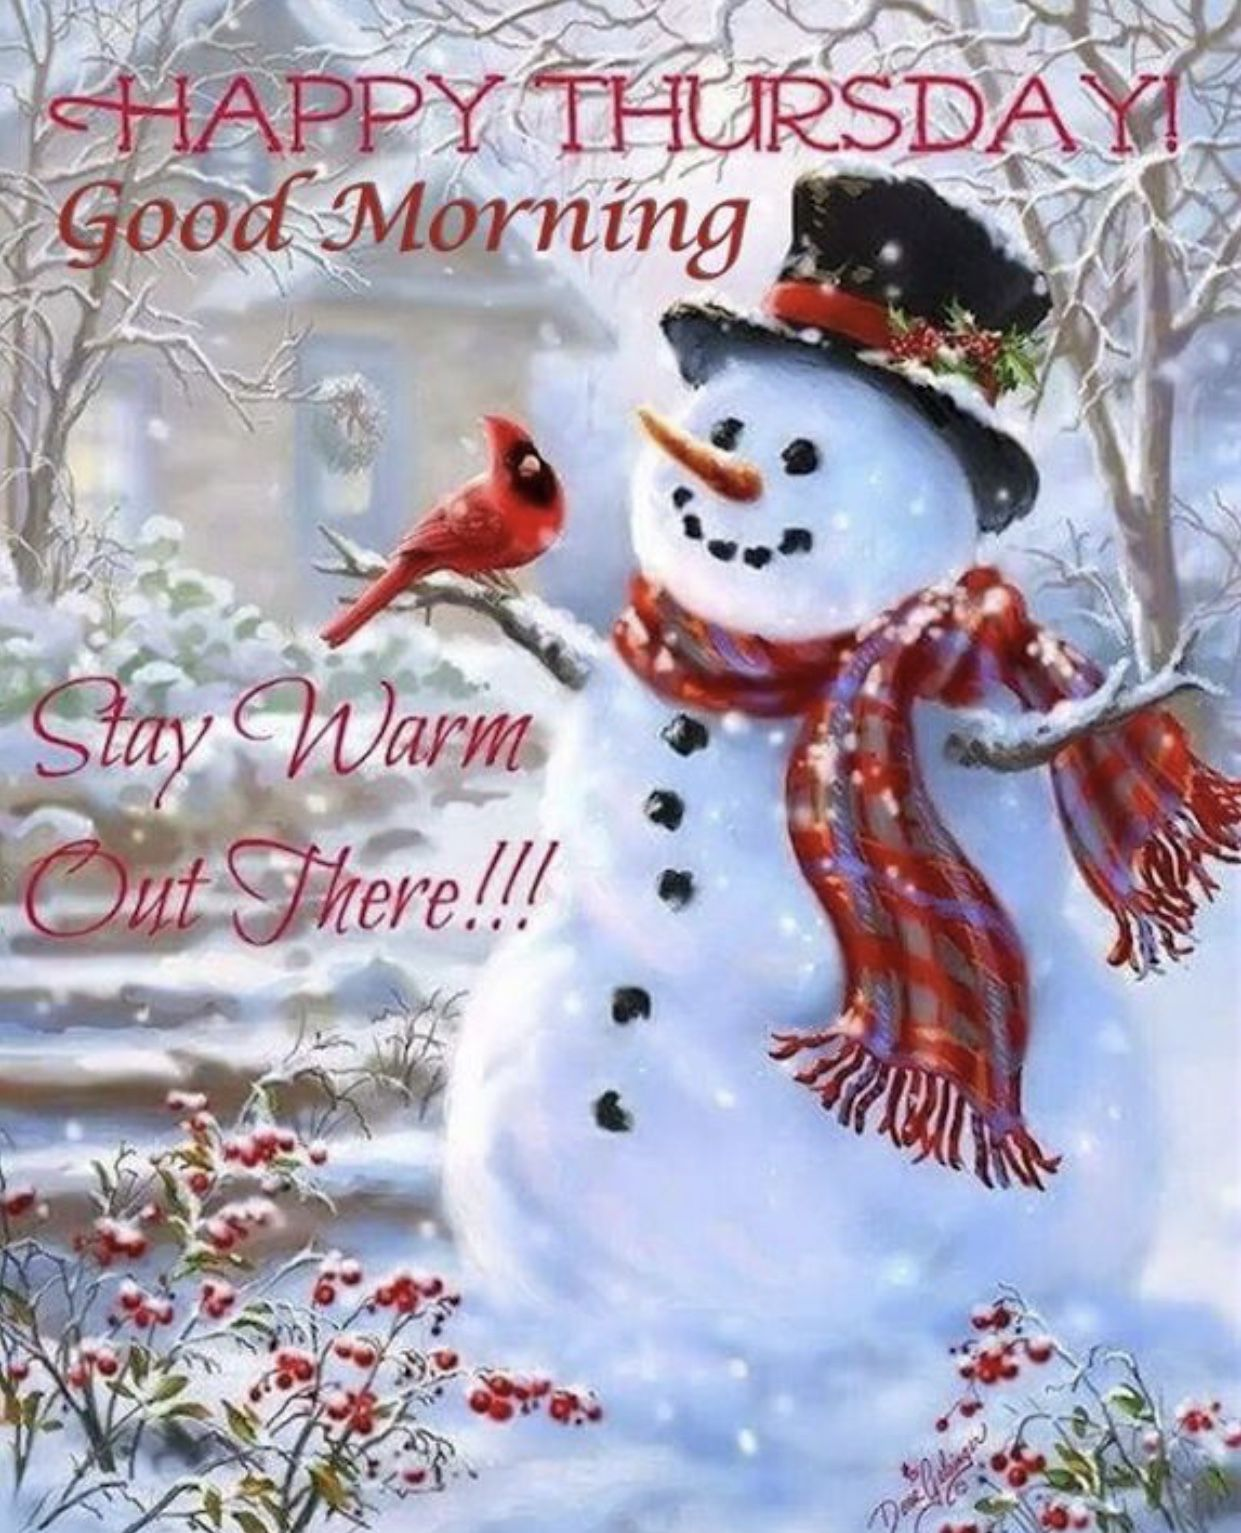 Pin by marlene russell henderson on days of the week pinterest christmas quotes christmas greetings merry christmas morning quotes night quotes thursday morning christmas wallpaper hello thursday happy thursday m4hsunfo